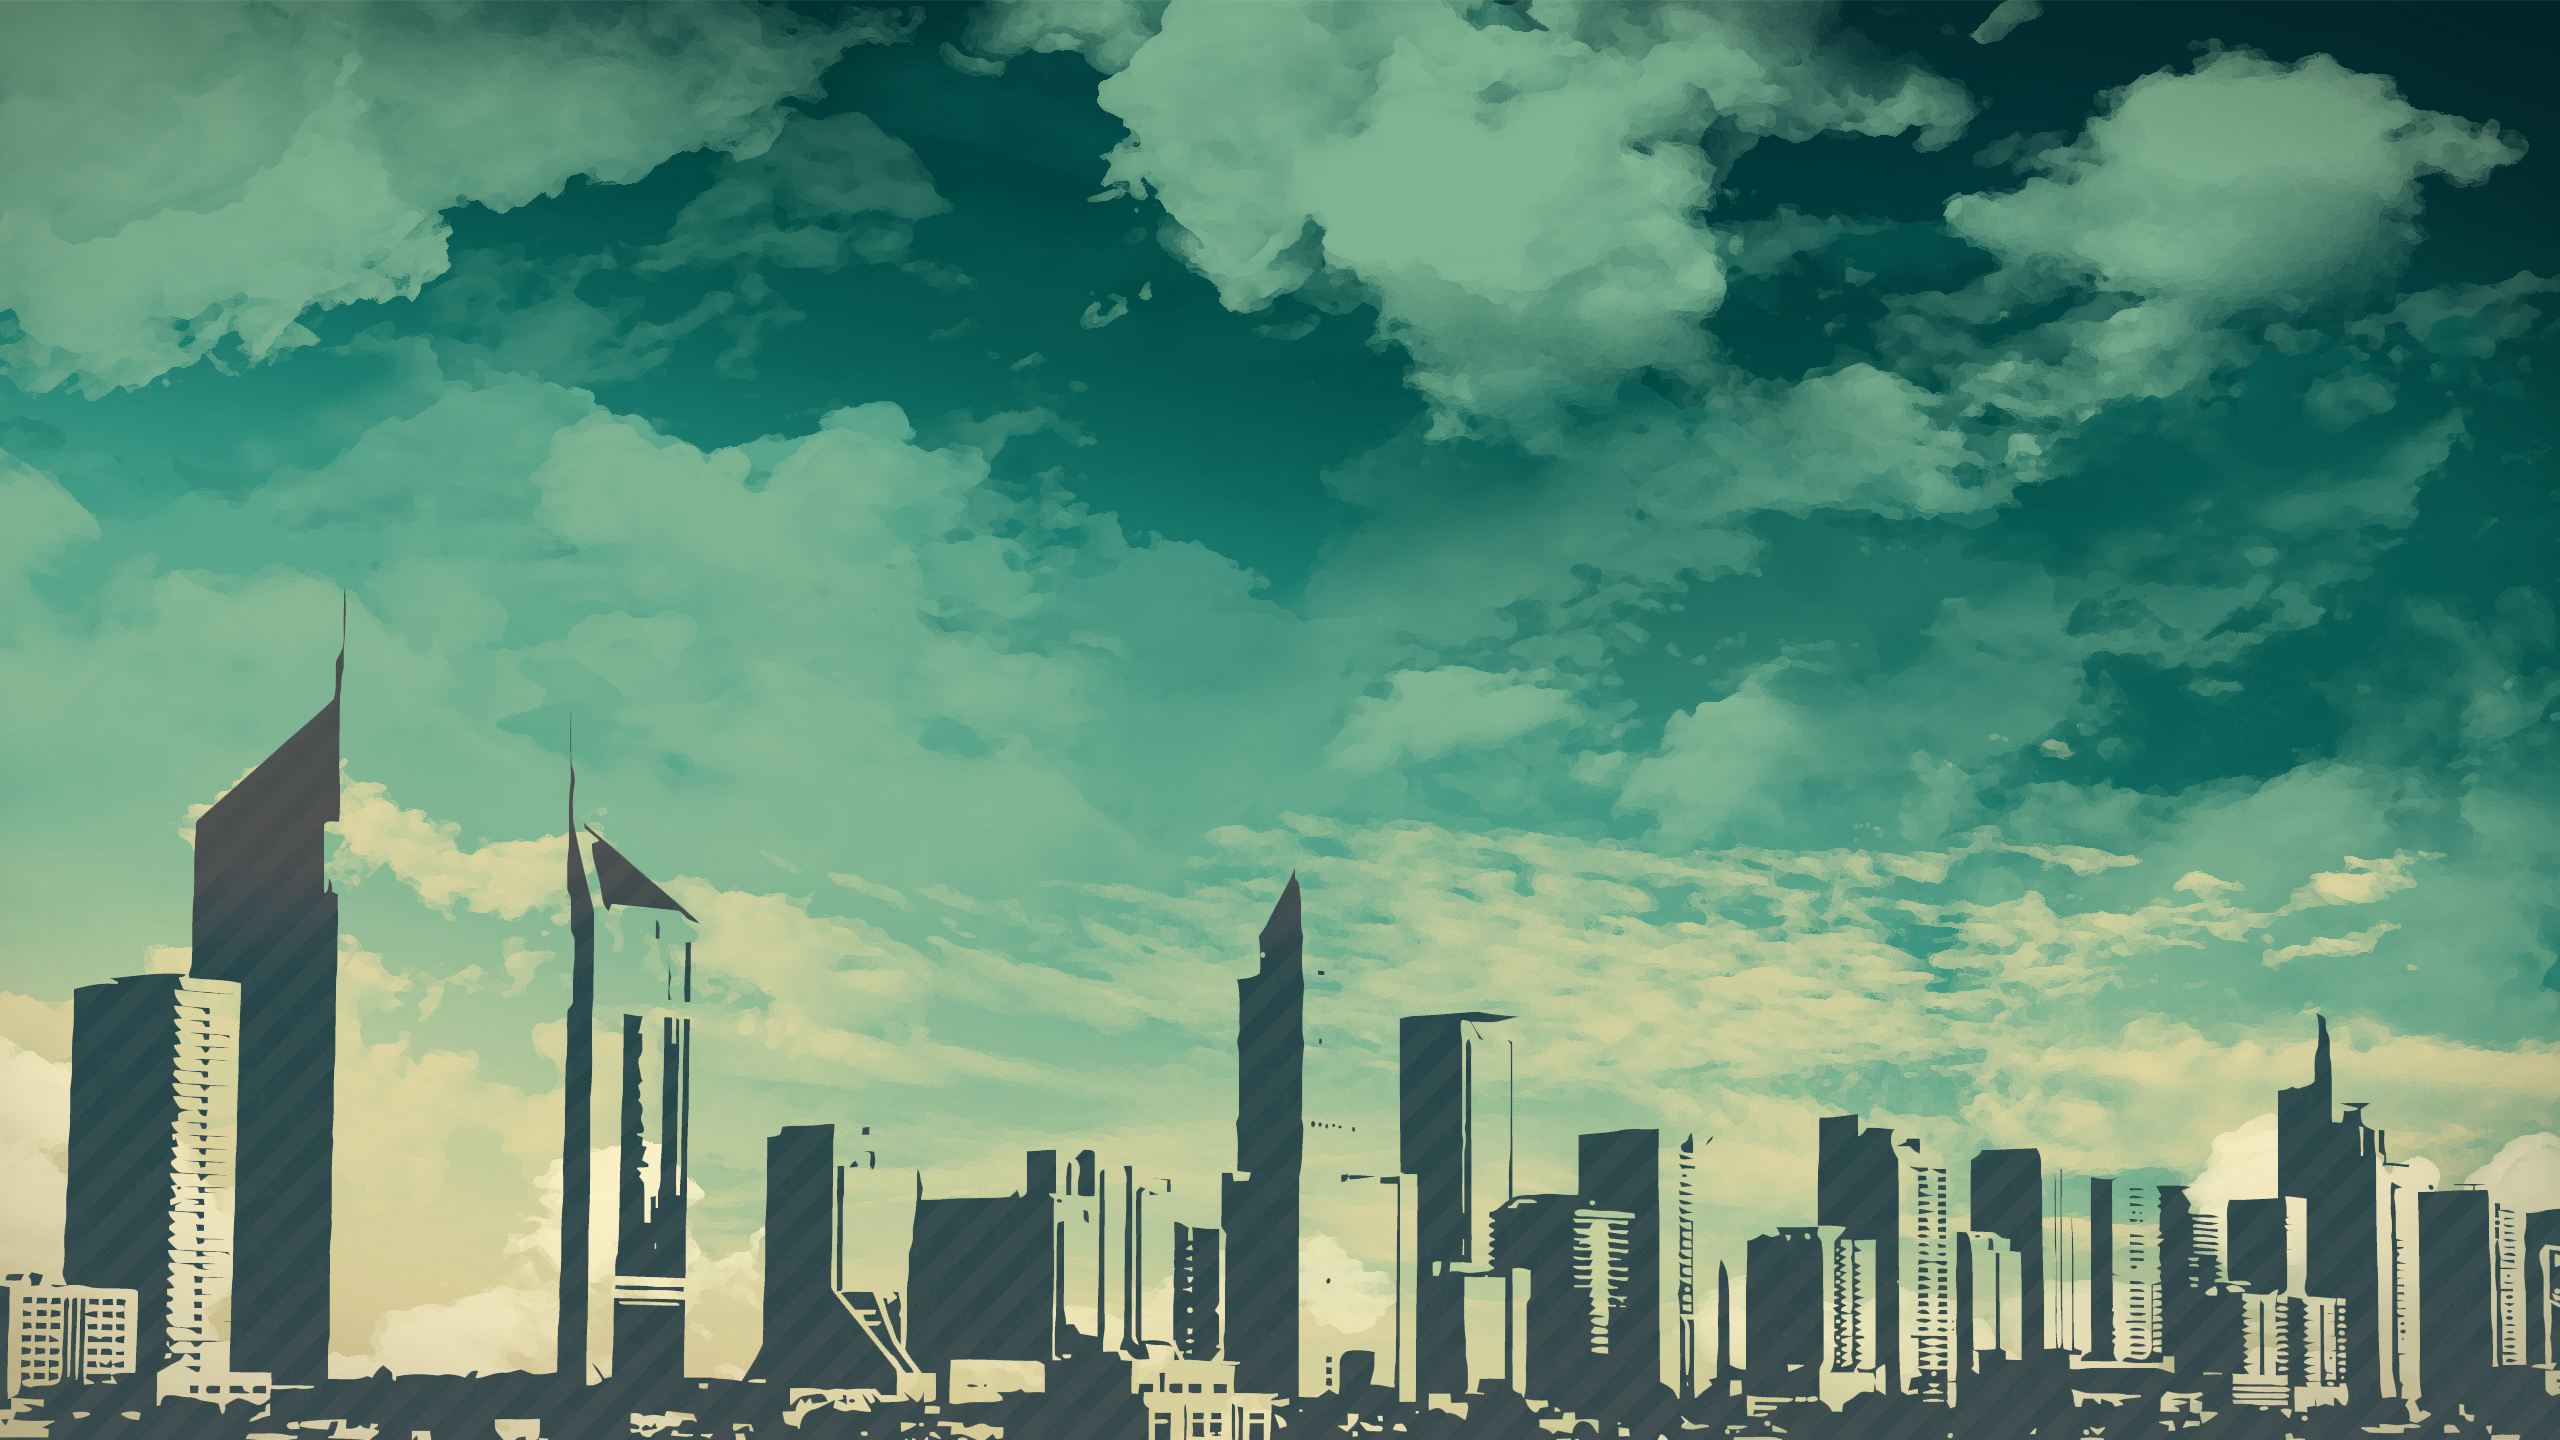 Drawn wallpaper cityscape Skyscrapers drawing #1 HD drawing